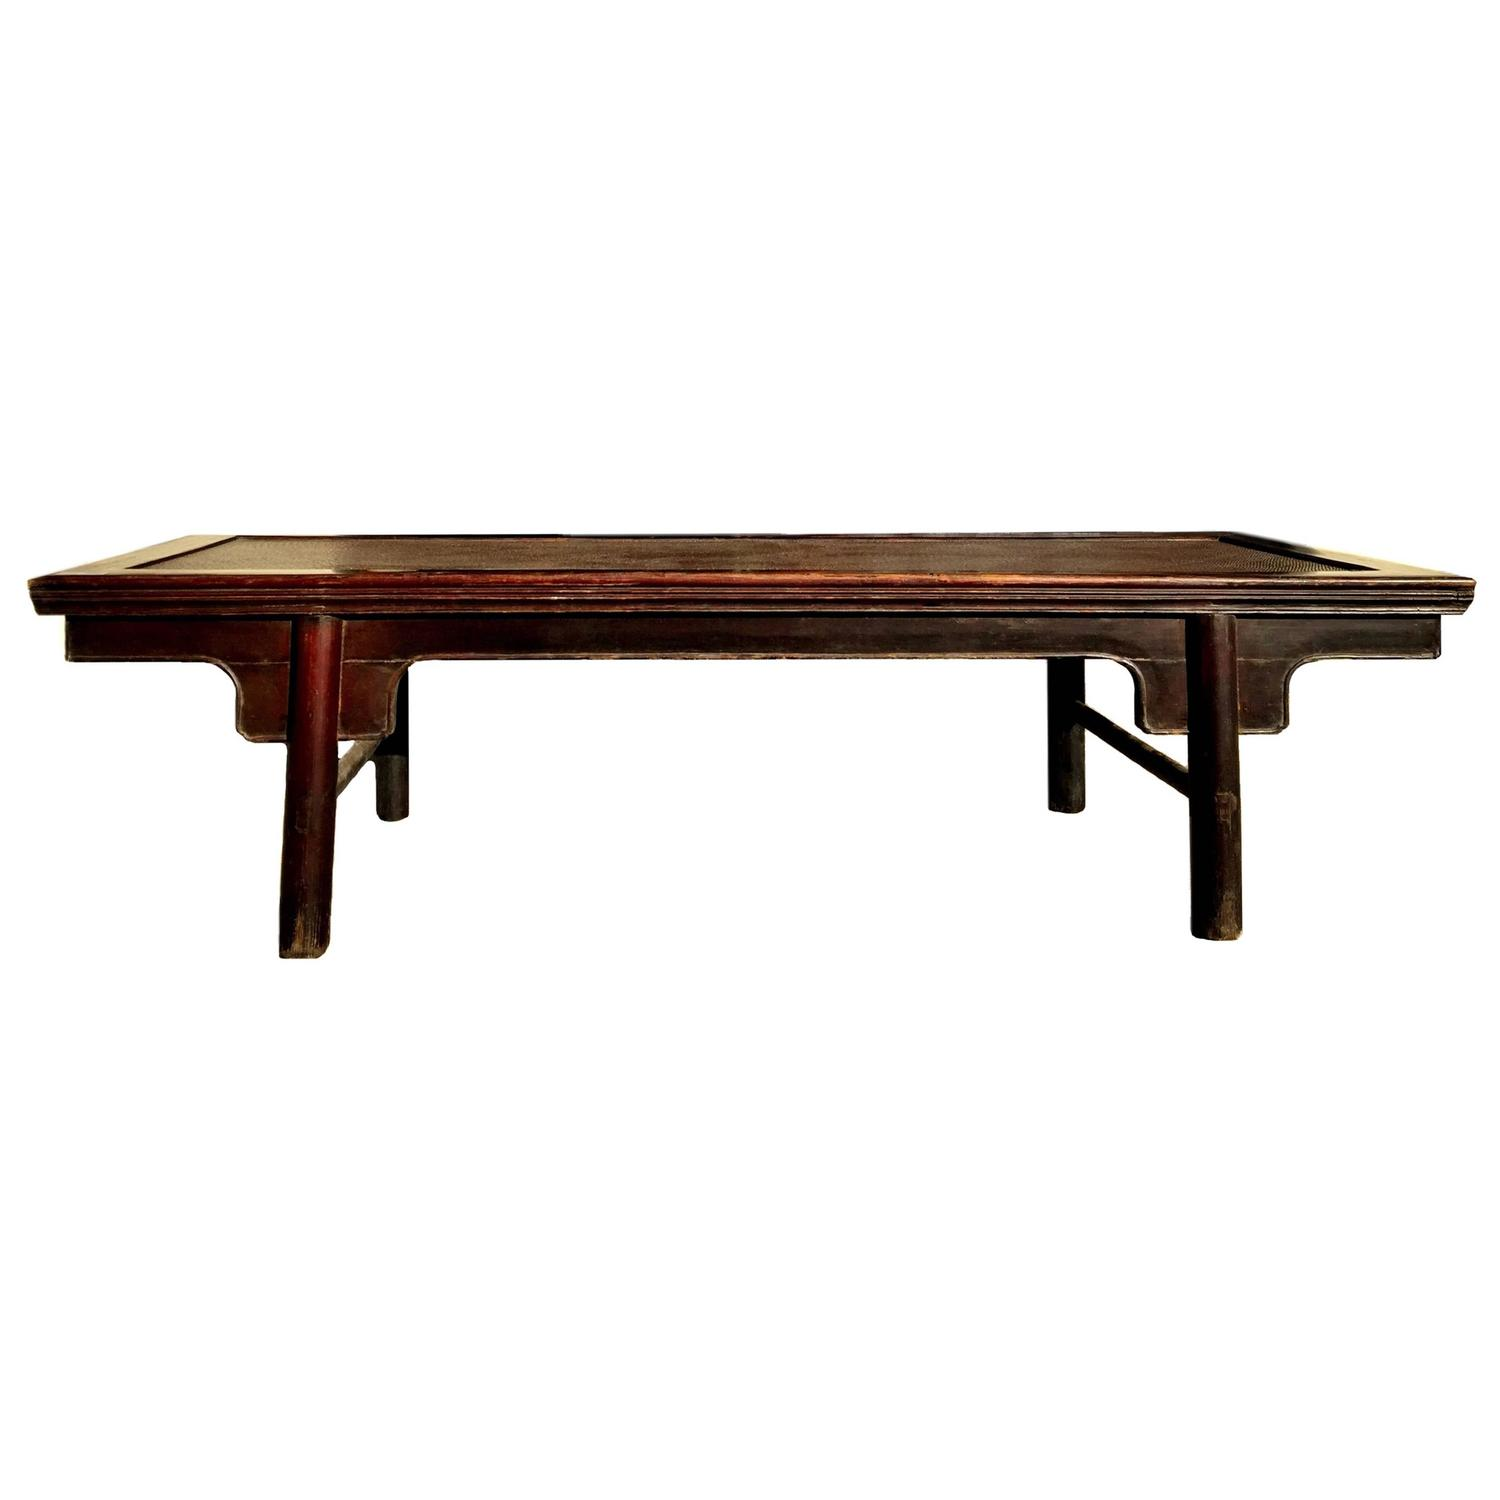 Large Chinese Antique Bench Or Low Table With Rattan Ming Style For Sale At 1stdibs